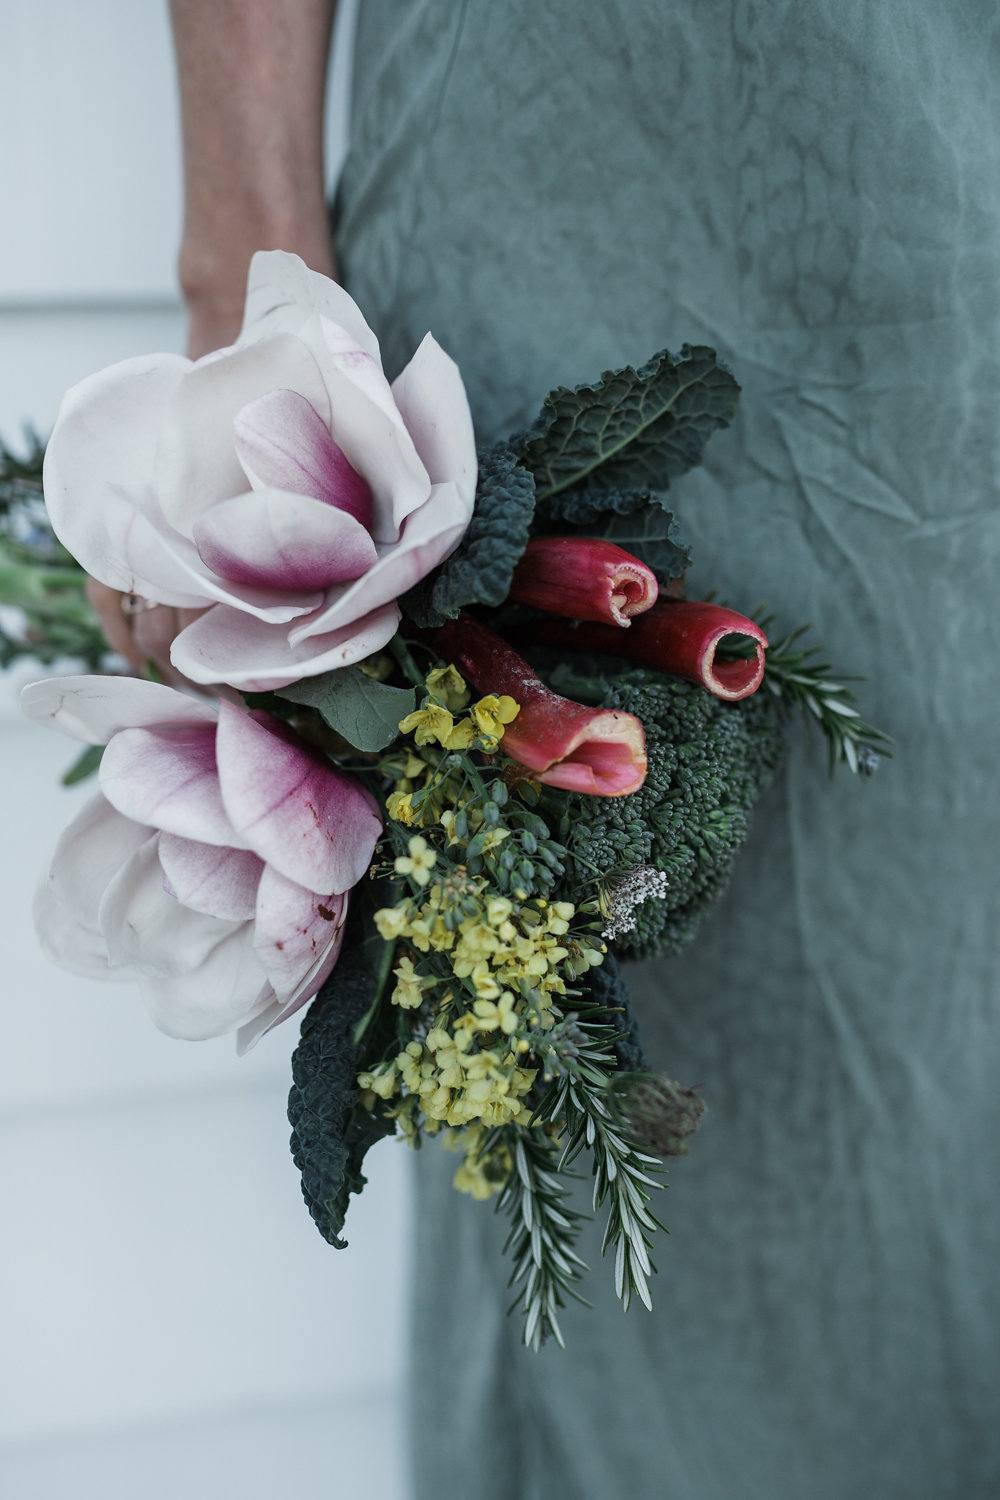 Wild delicious Gallery image floral bouquet held by side